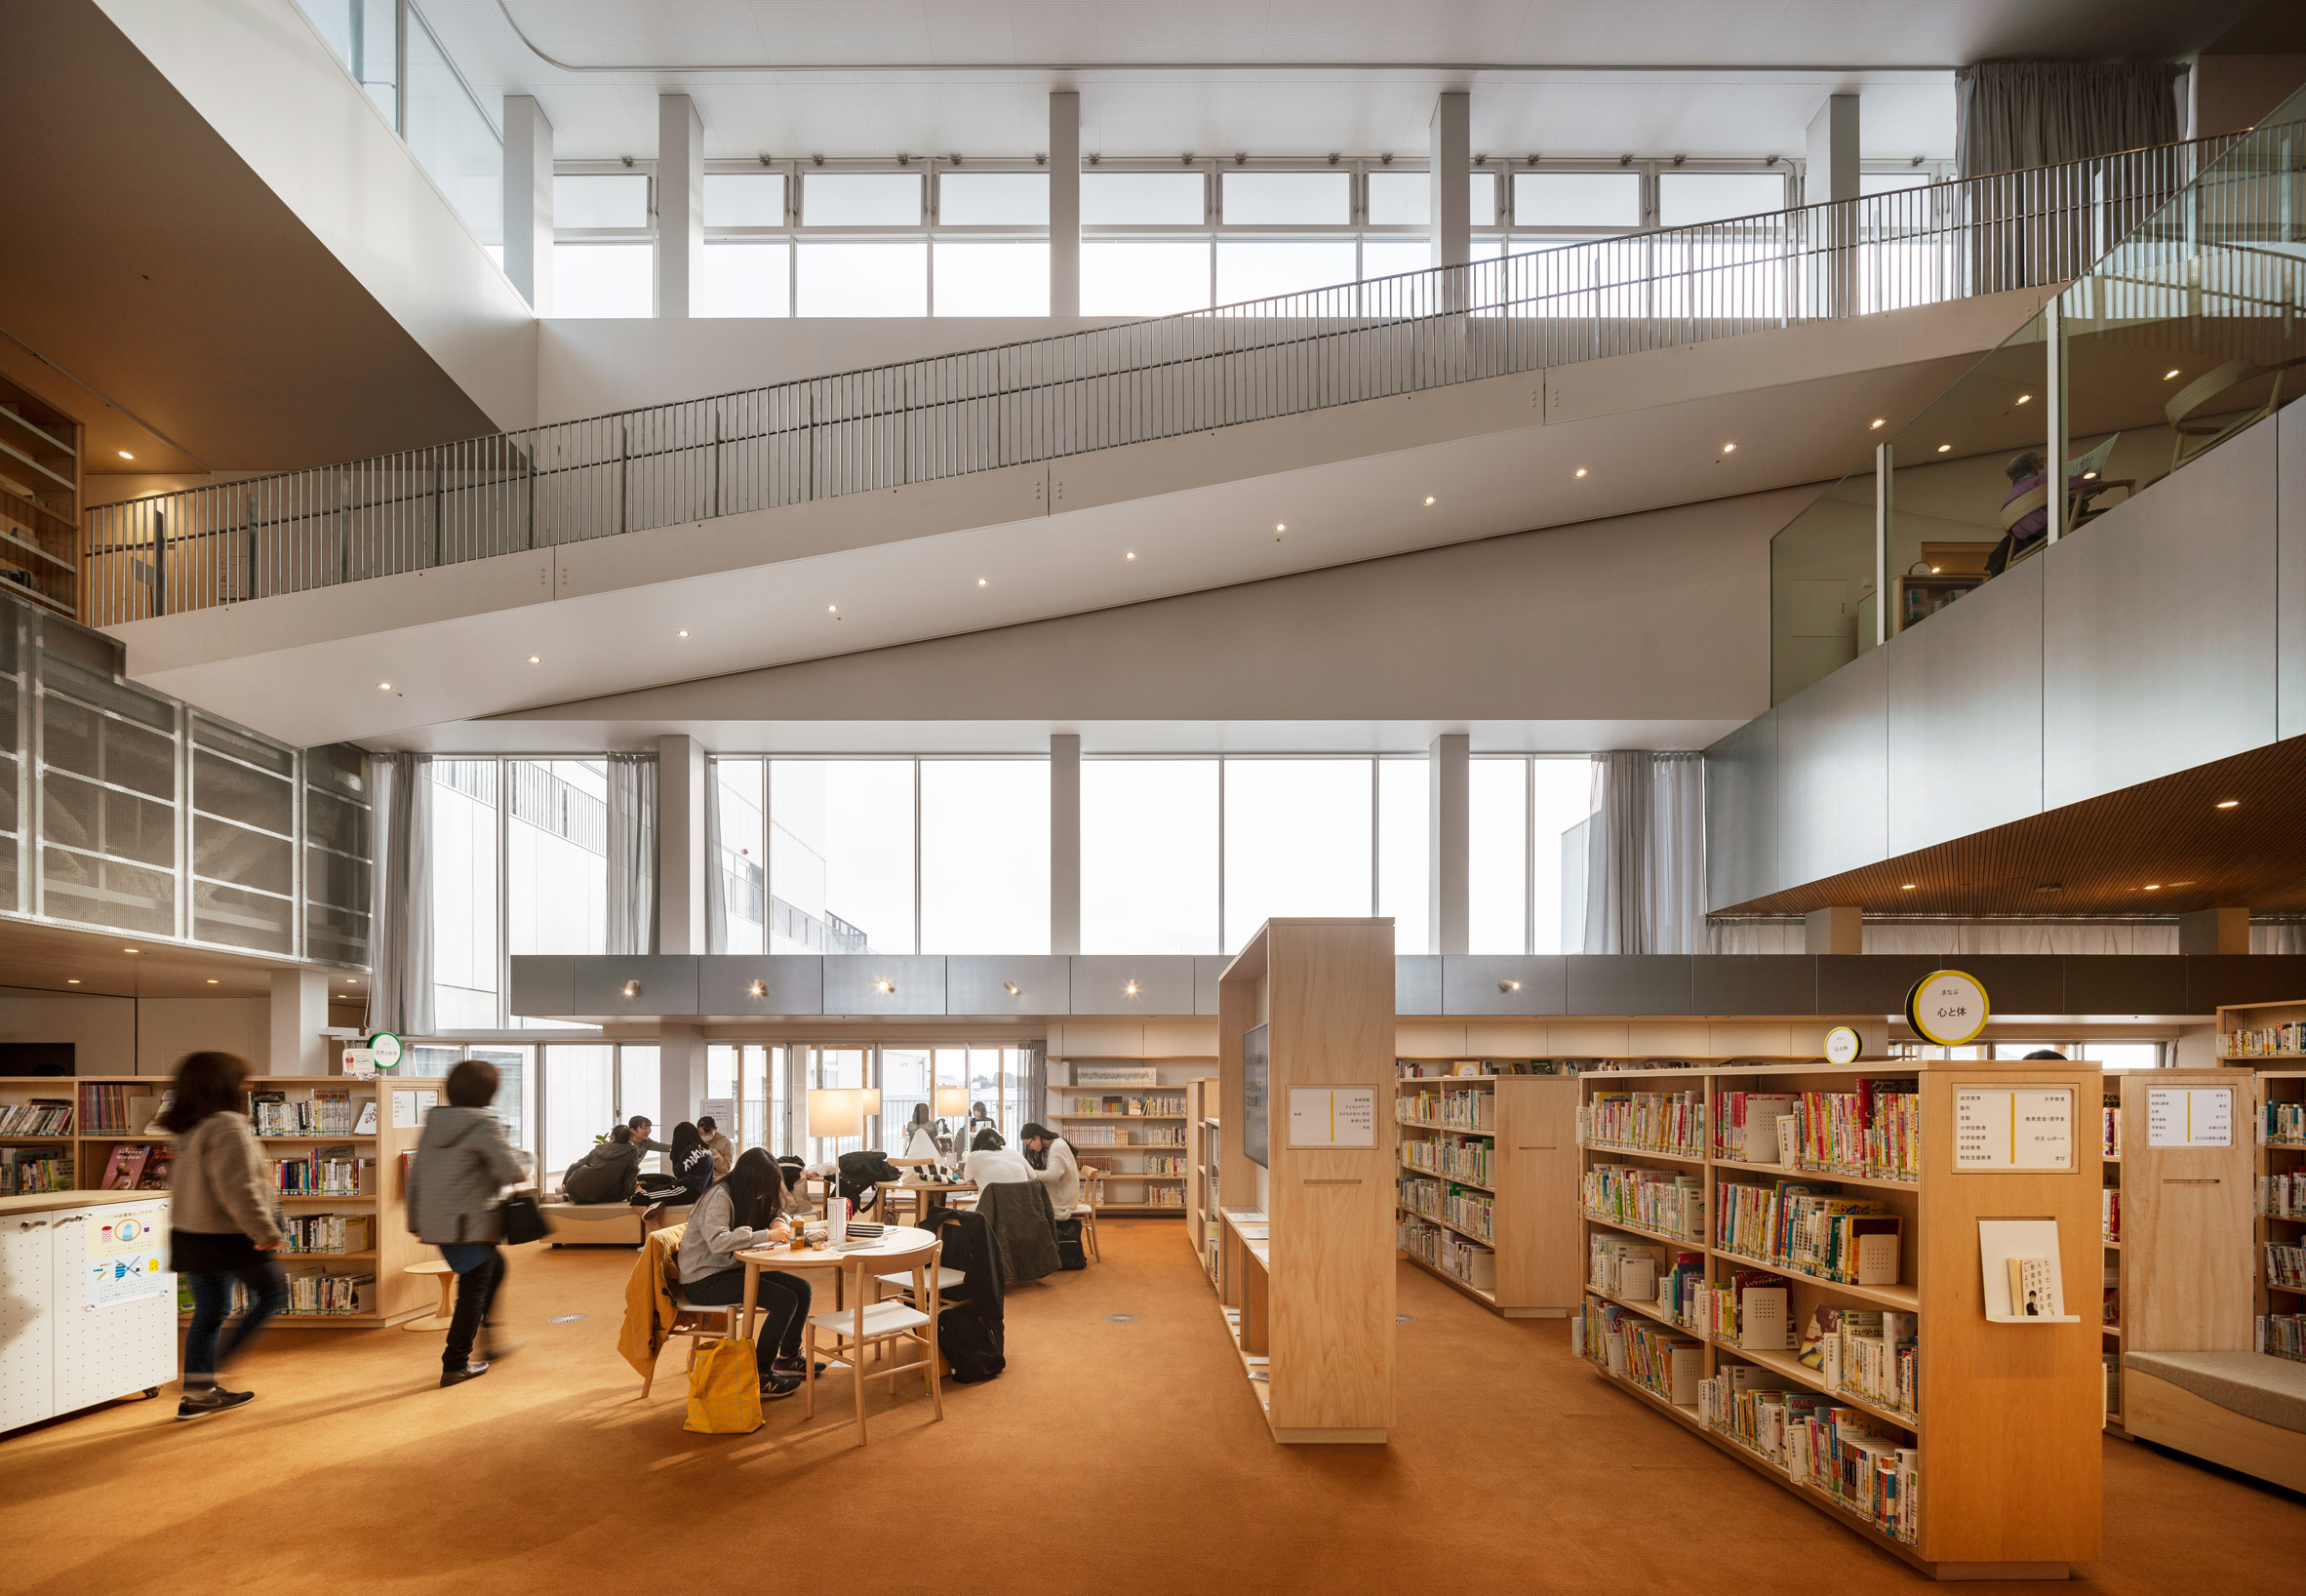 Orange carpet covers the floor of the library at The Sukagawa Community Center